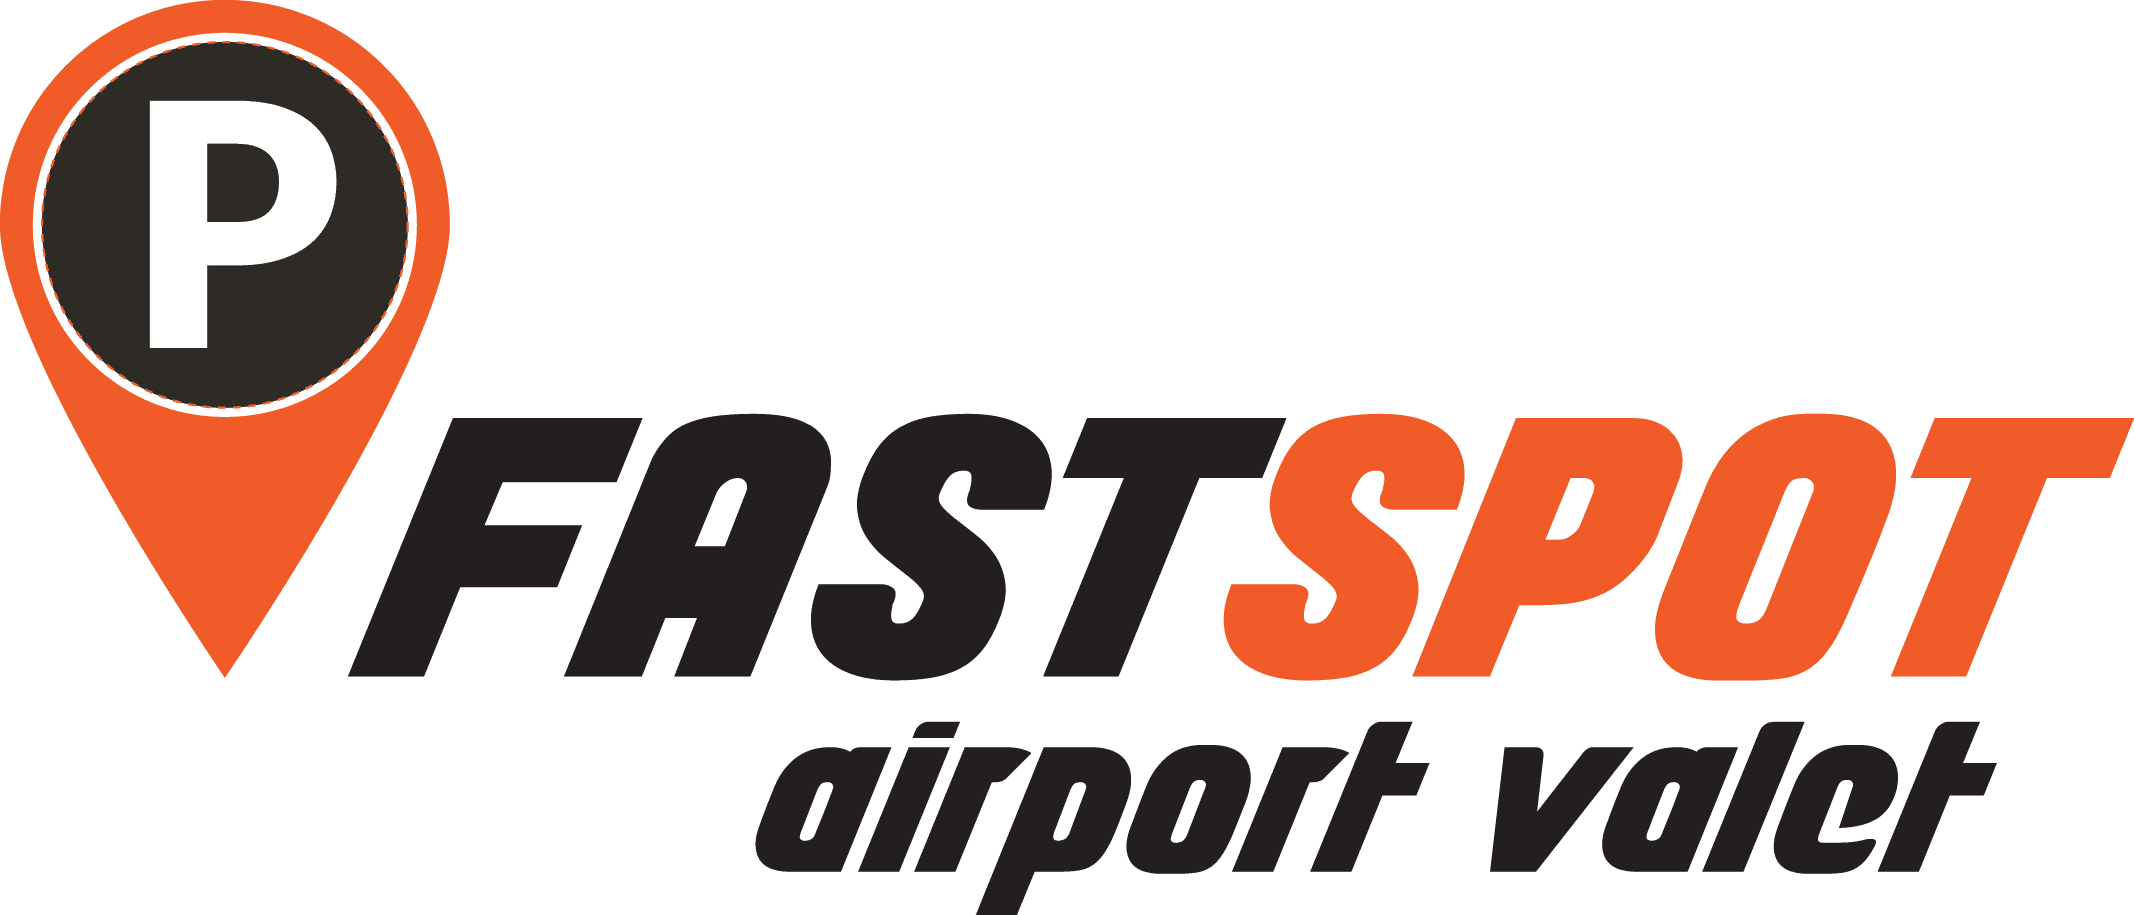 Fast Spot Airport Valet  - UNCOVERED